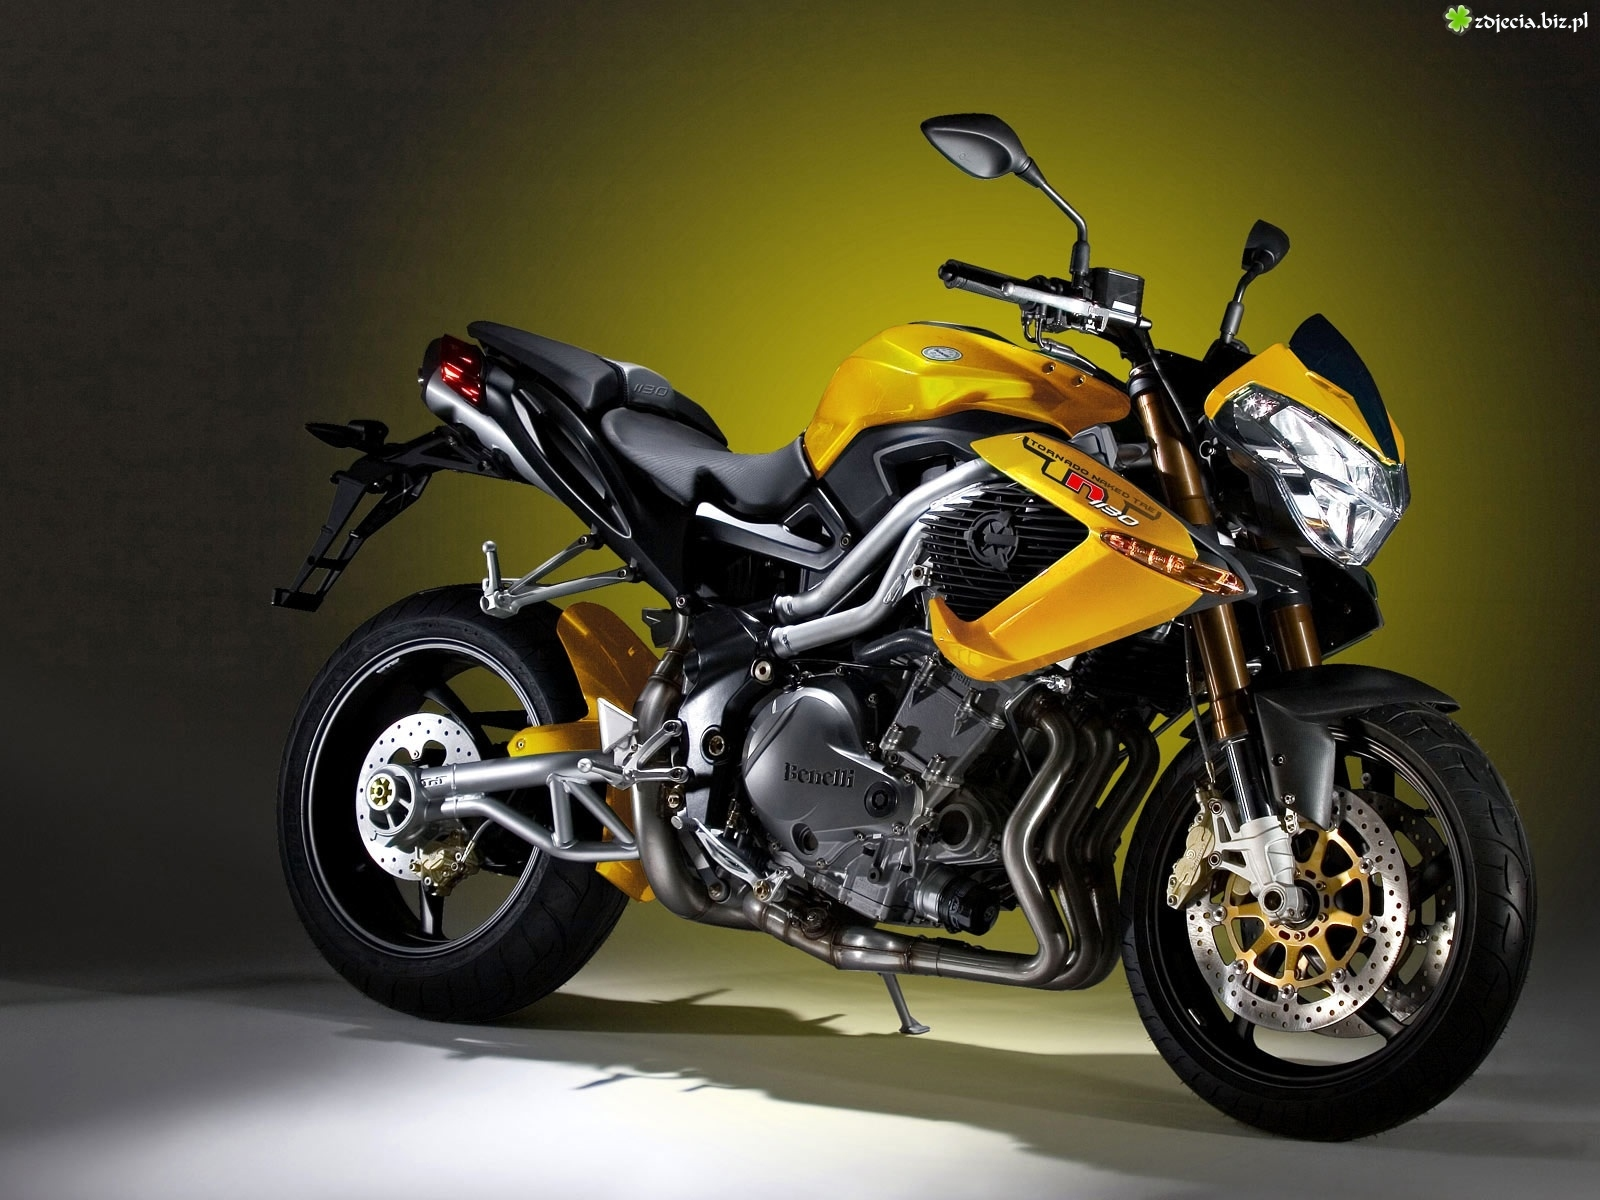 2013 Benelli Tornado Naked TRE1130 Review